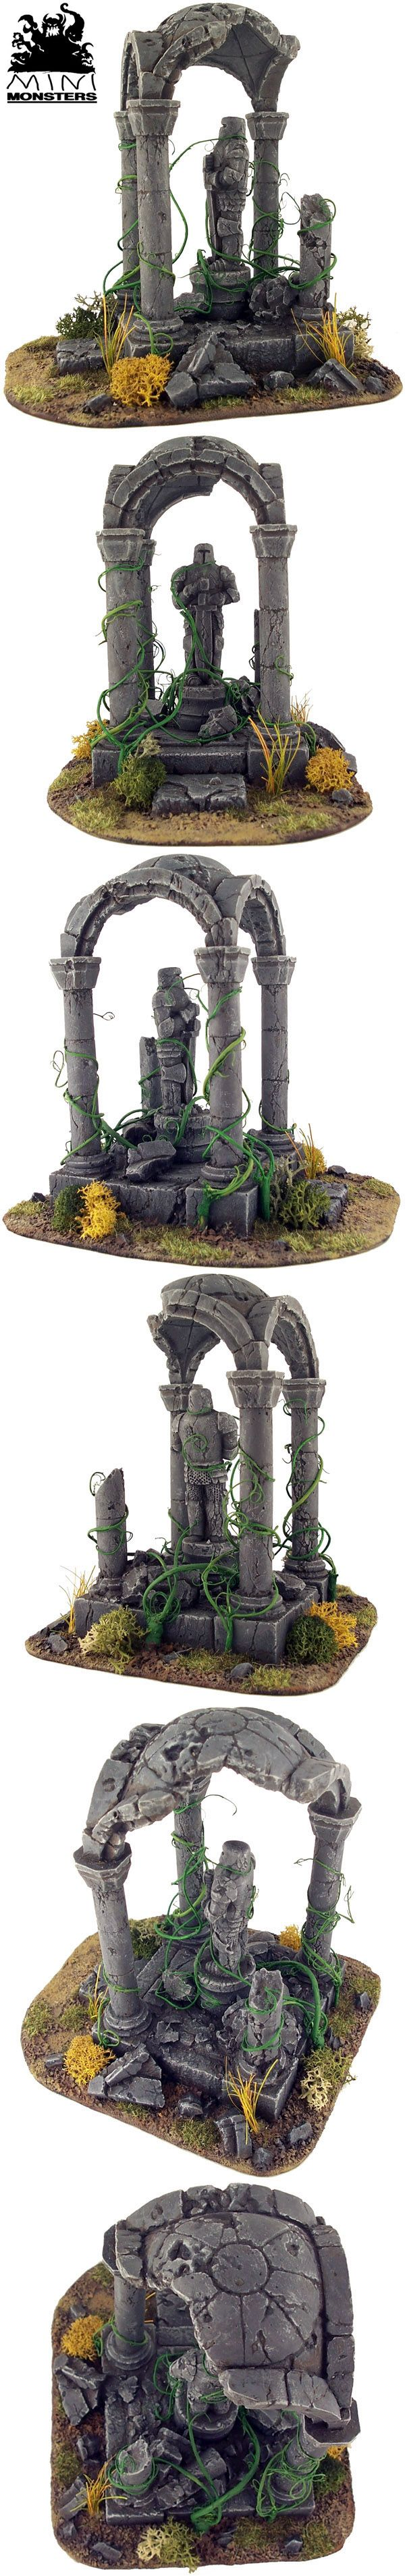 Ruined Temple.  Could be a good terrain piece for warhAmmer fantasy, 40k,